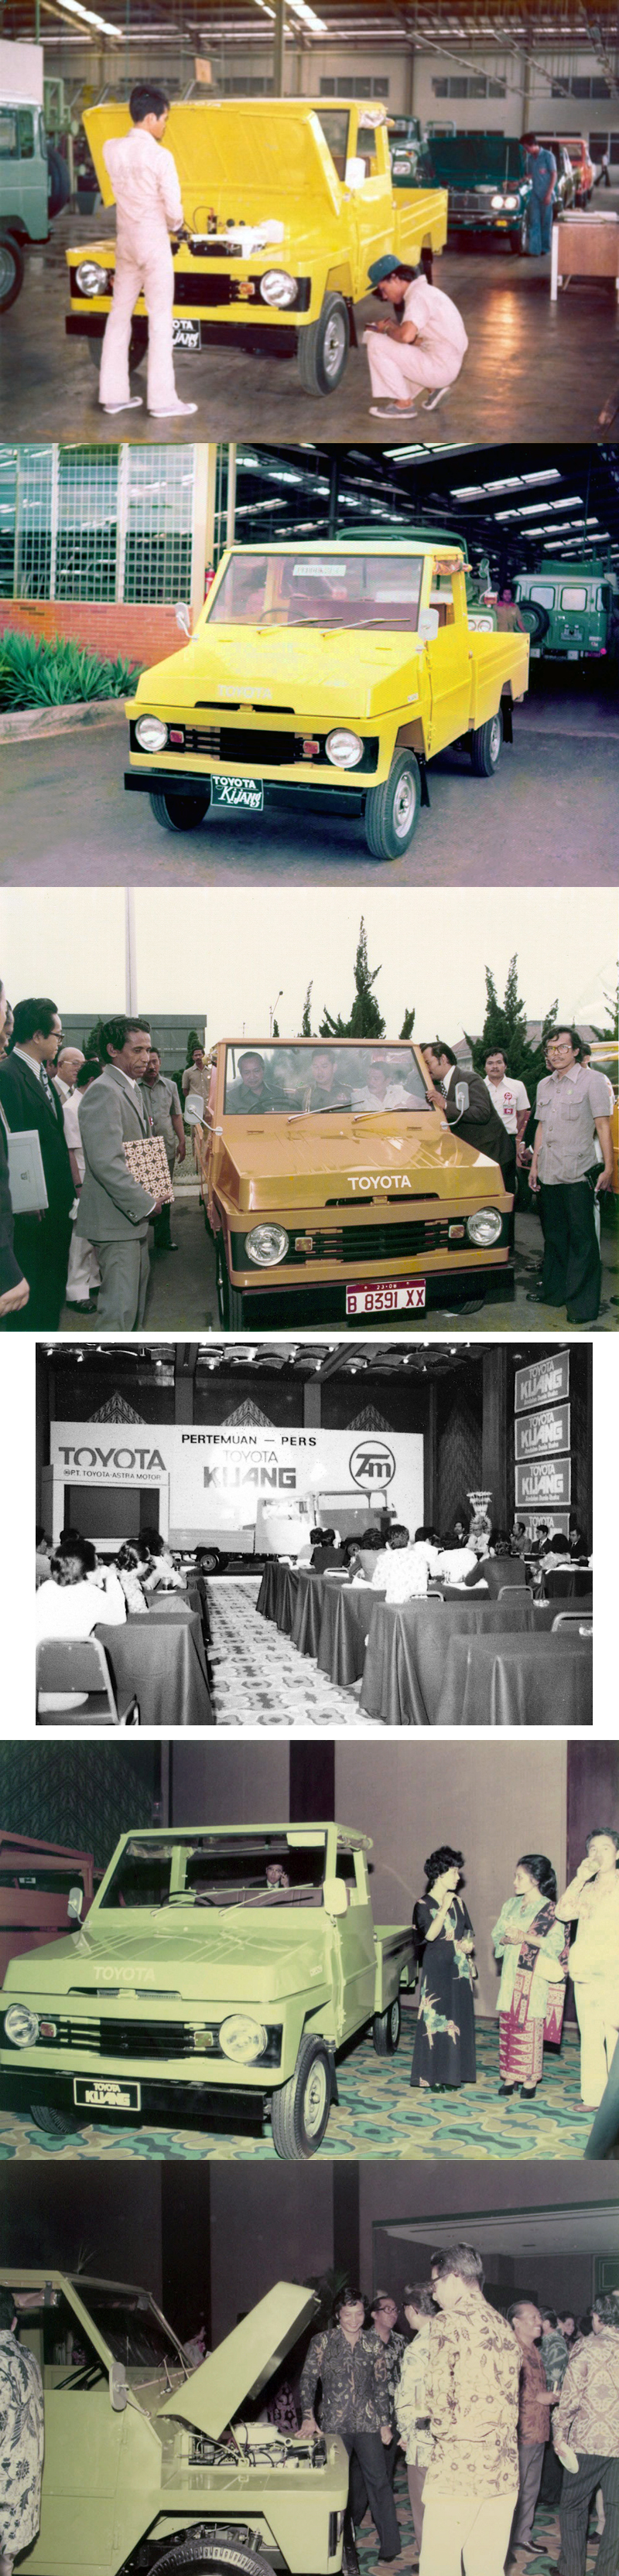 1977_toyota_kijang_launching_ceremony